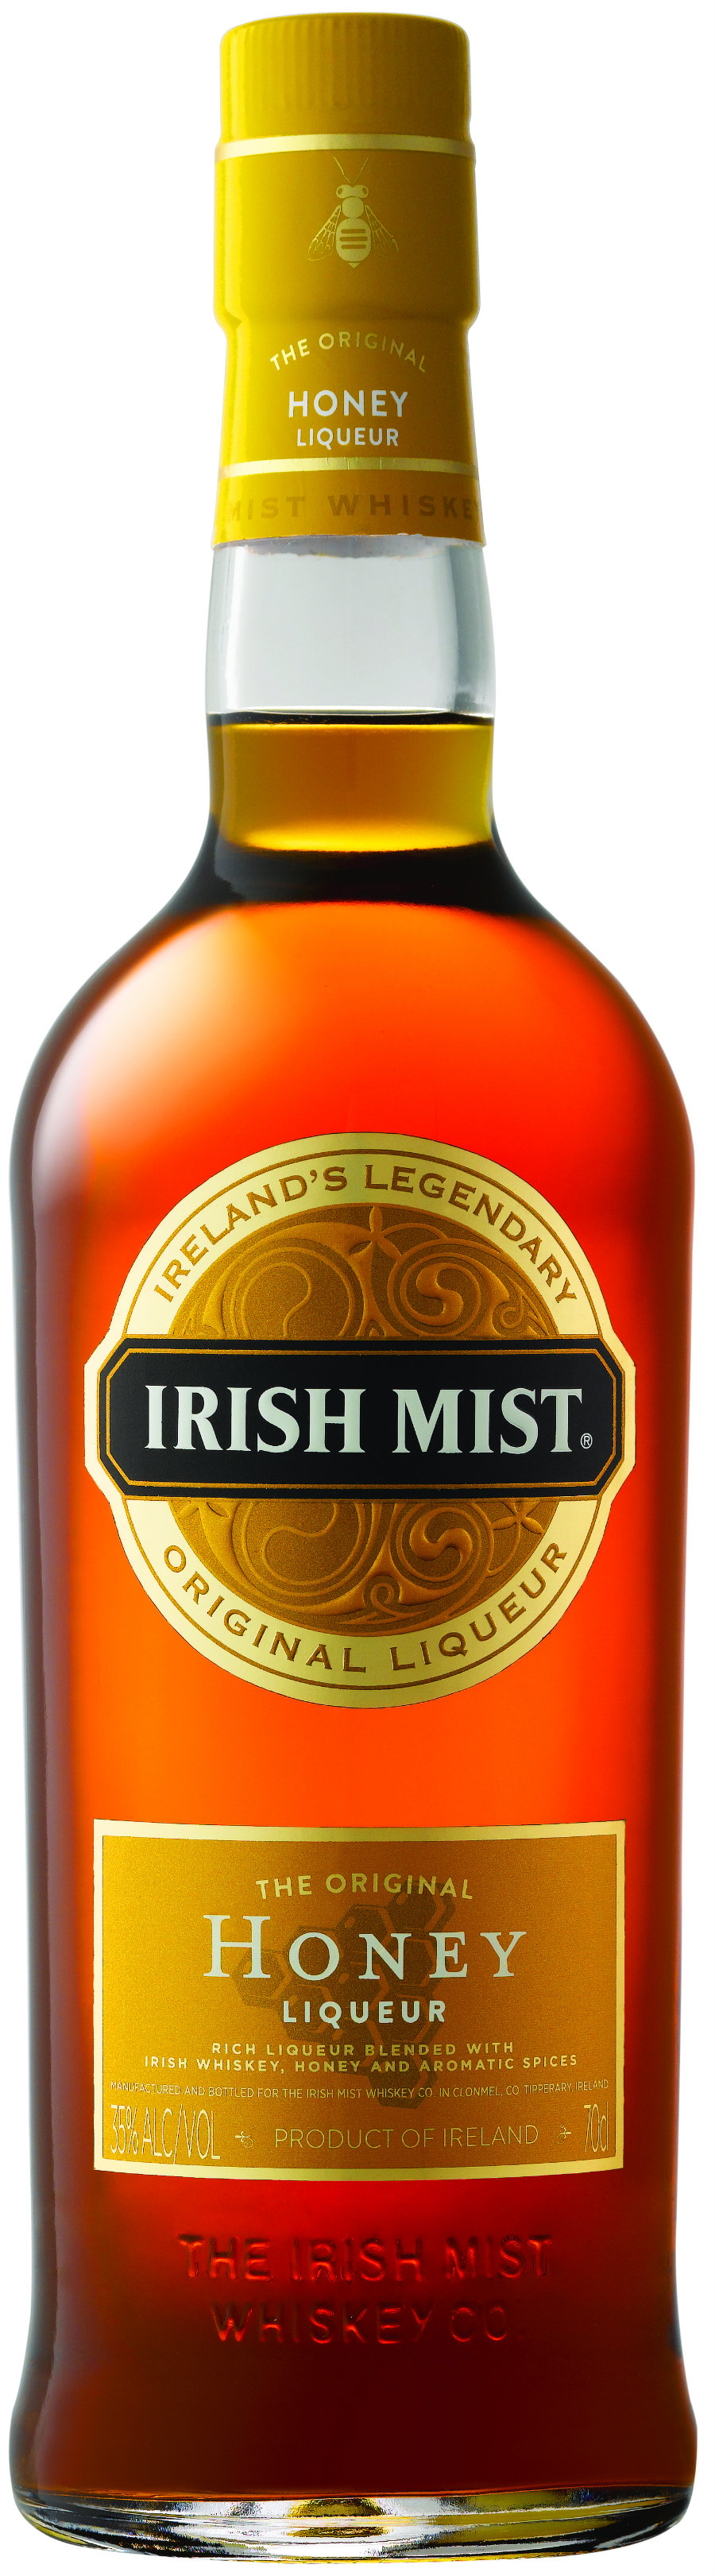 Irish Mist - Honey Liqueur 70cl Bottle